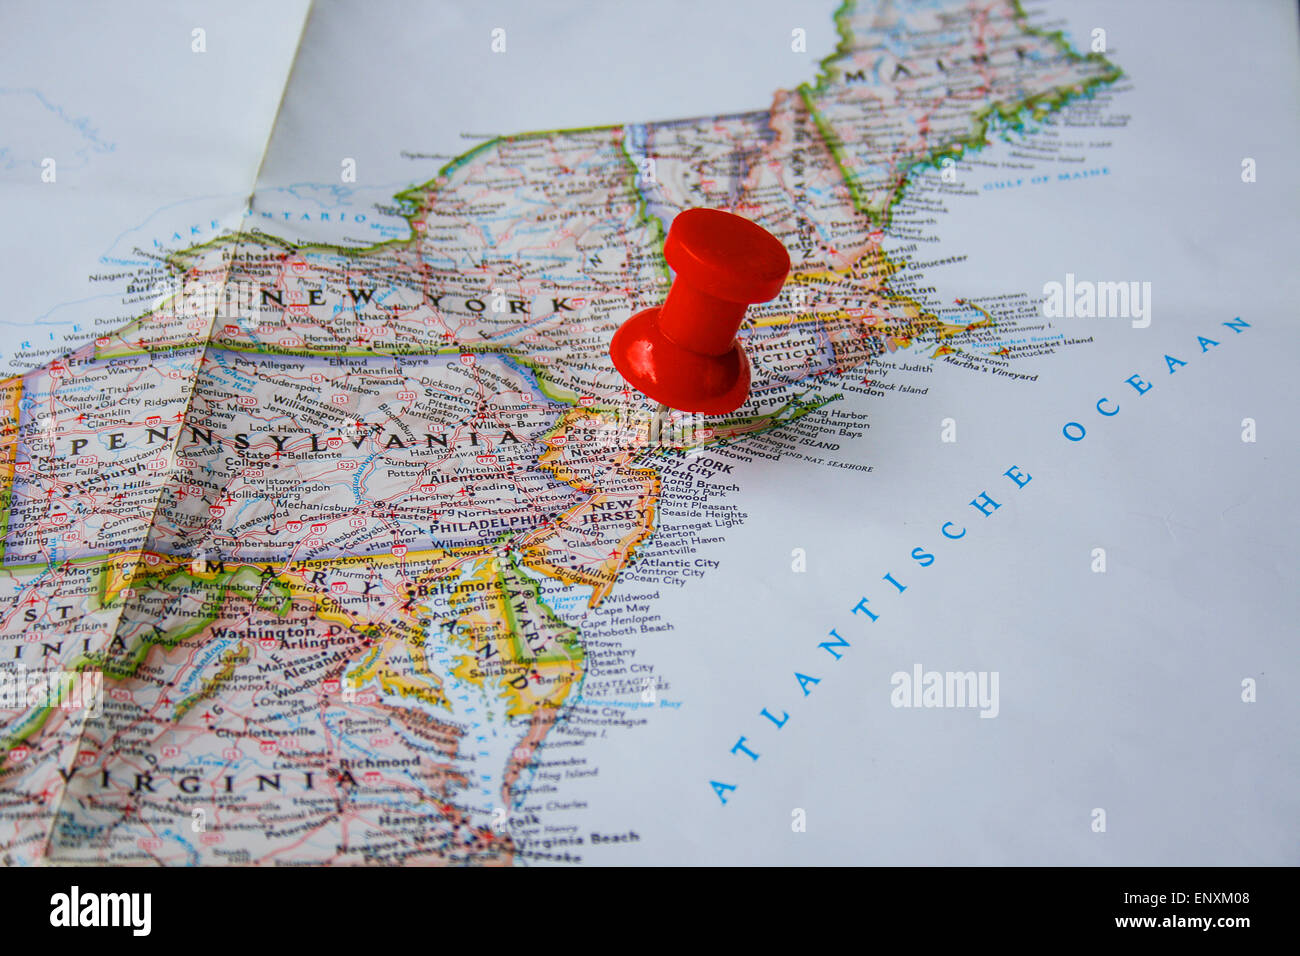 Red Pin On Map Of USA Pointing At New York City New York Stock - New york in usa map